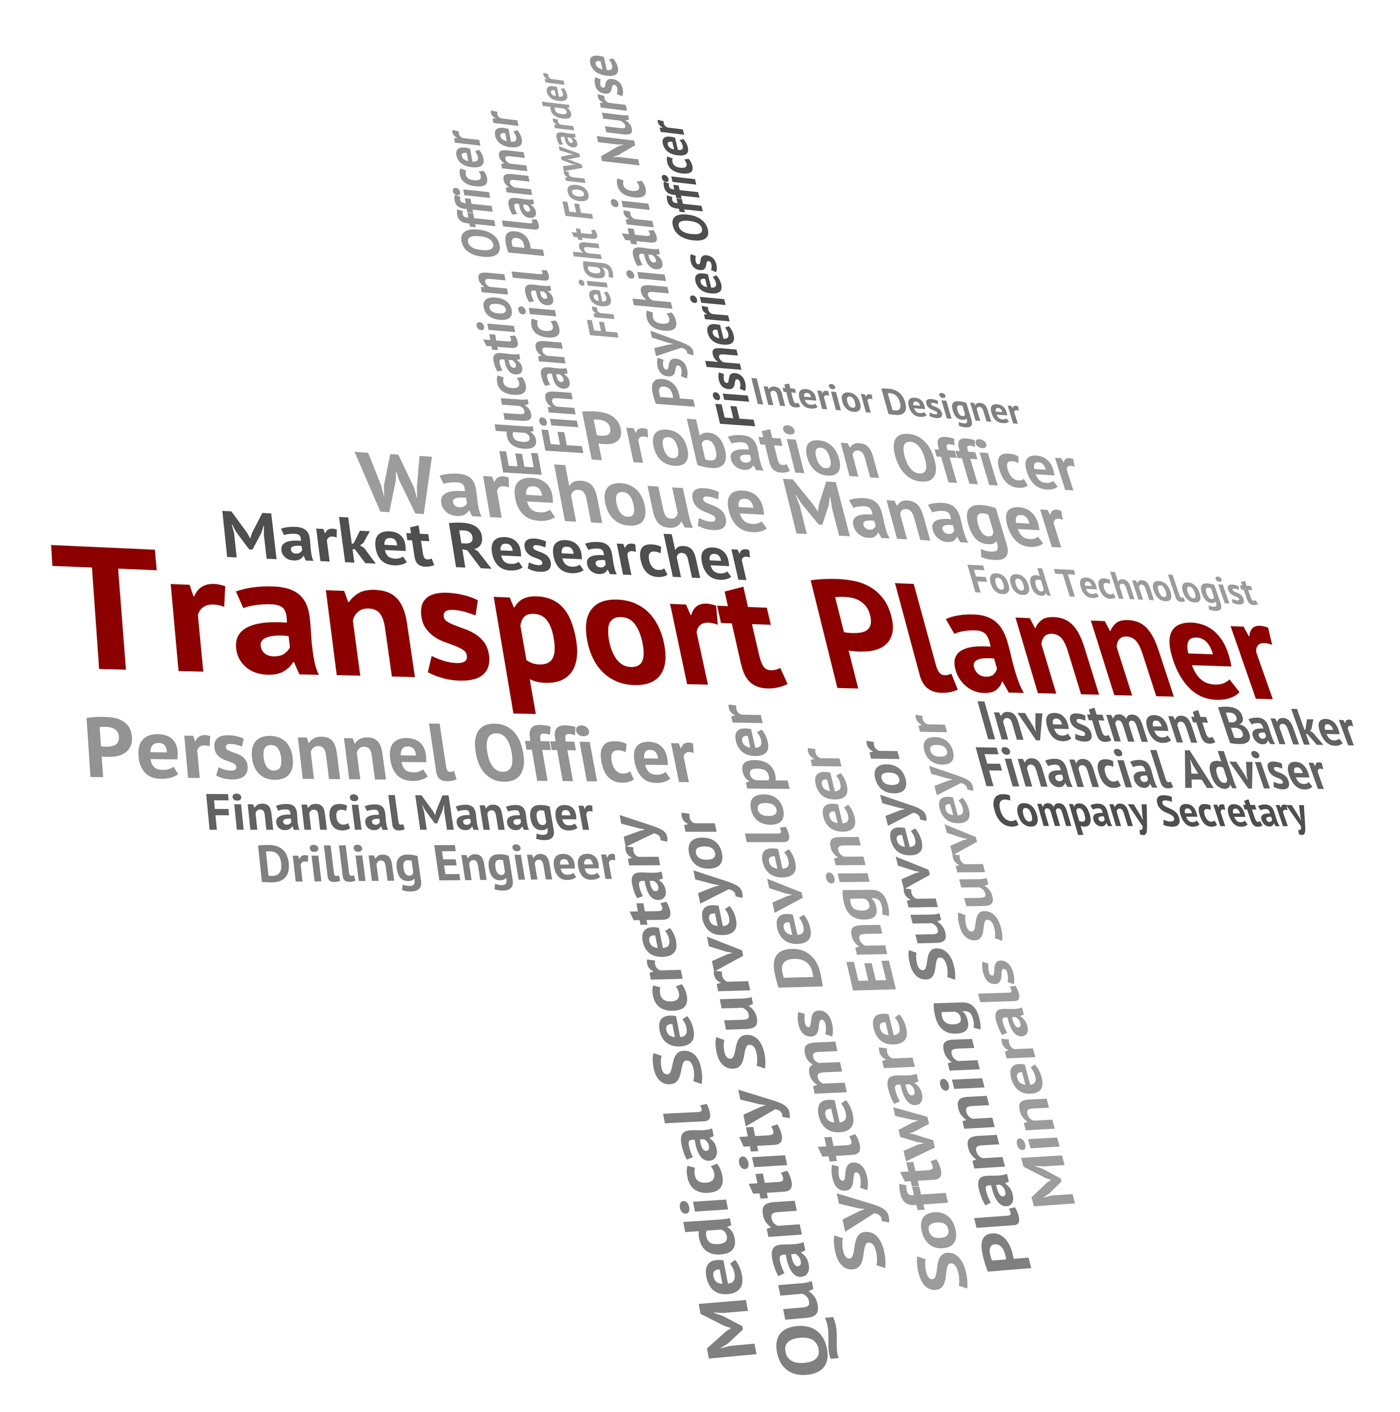 Transport planner shows jobs deliver and organizer photo